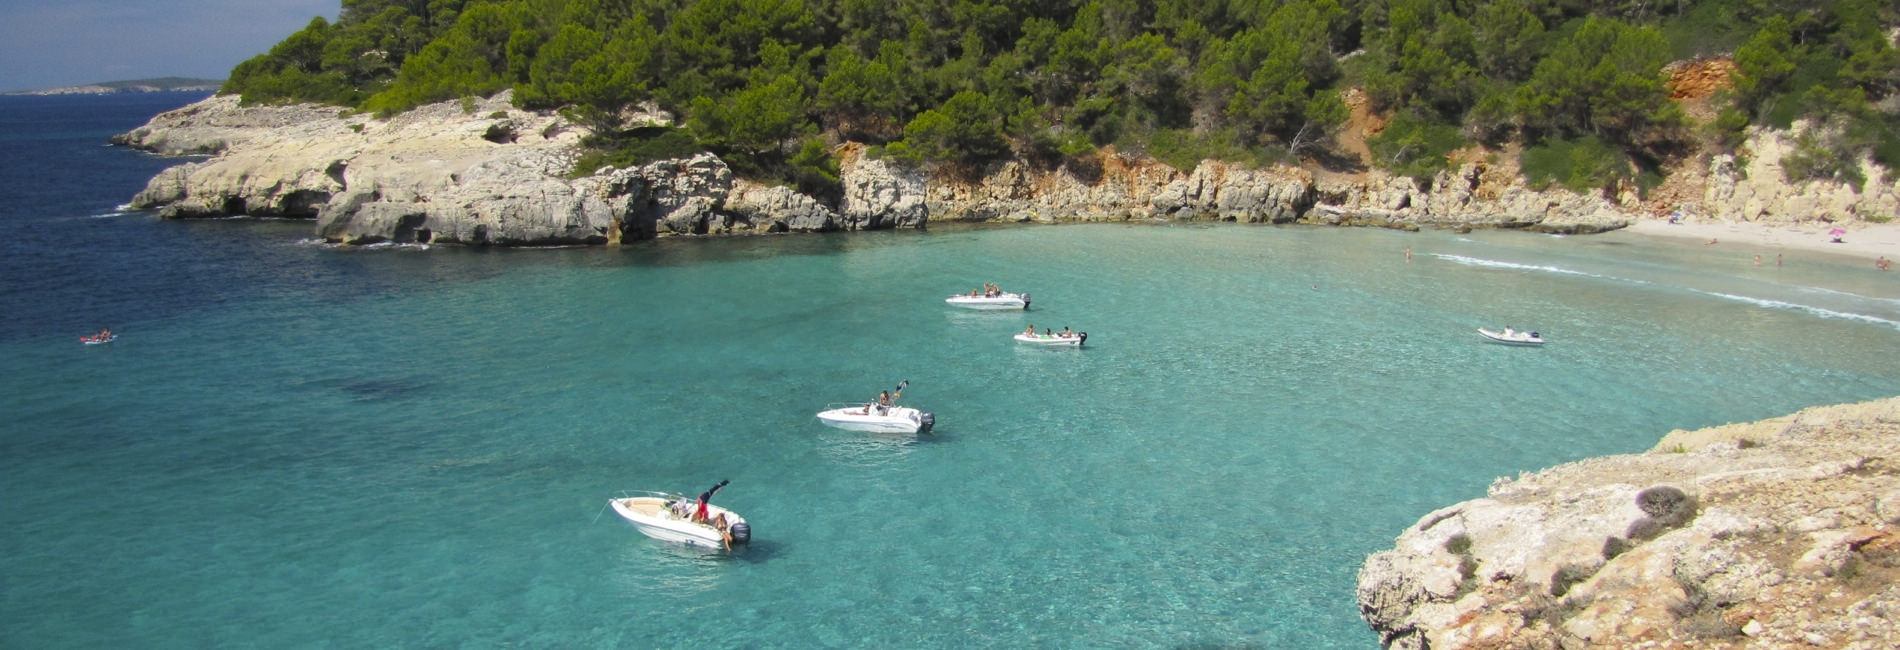 best_in_spain_menorca_cala_escorxada_1900x650